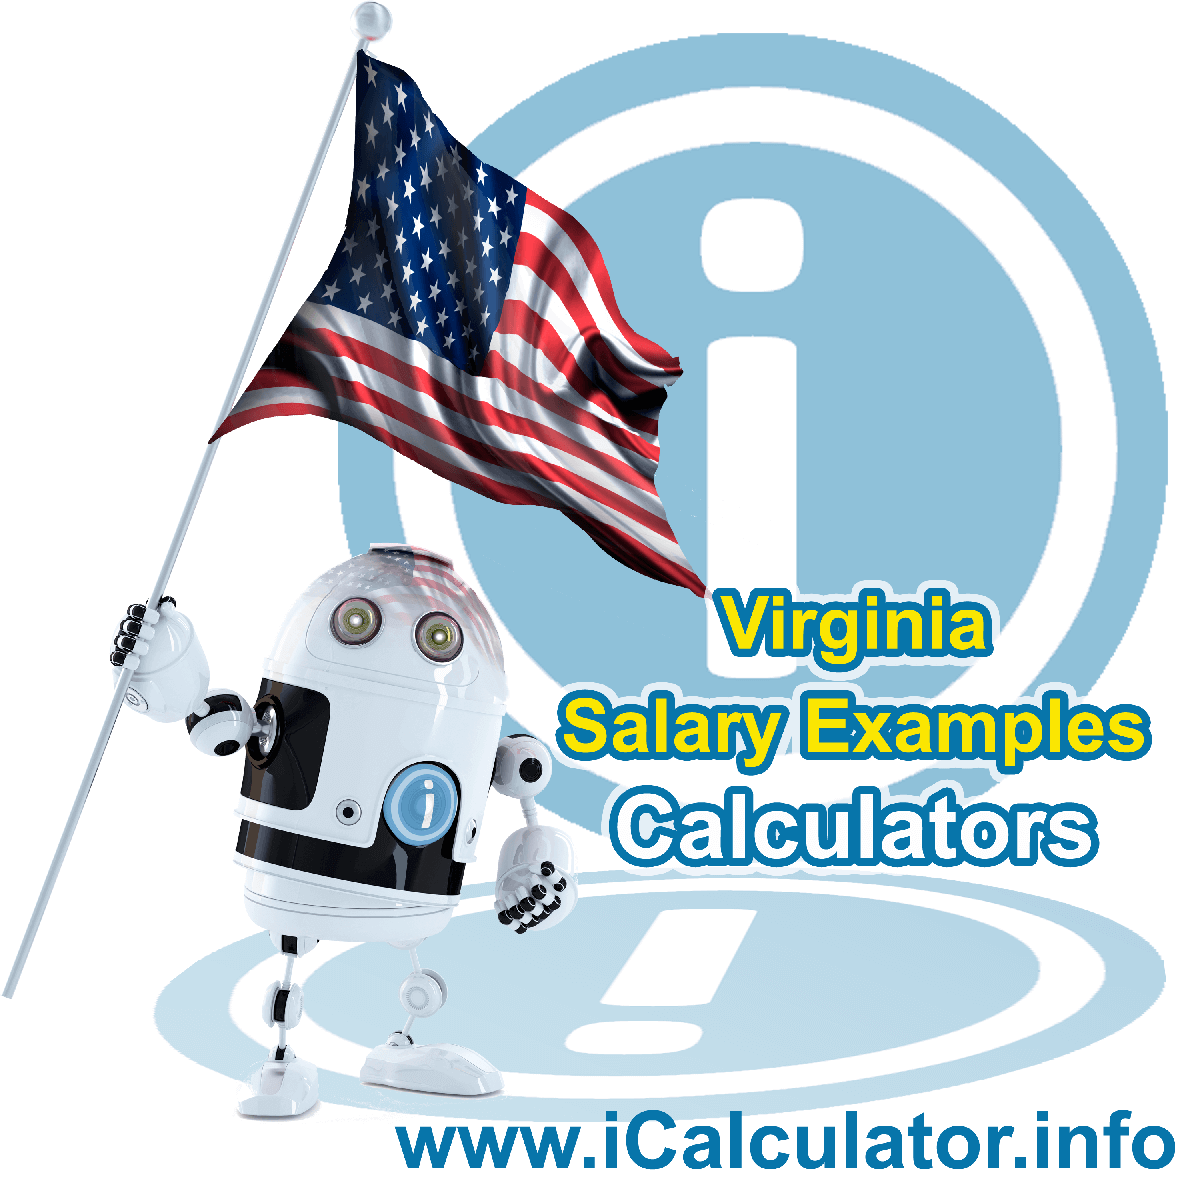 Virginia Salary Example for $210,000.00 in 2021 | iCalculator | $210,000.00 salary example for employee and employer paying Virginia State tincome taxes. Detailed salary after tax calculation including Virginia State Tax, Federal State Tax, Medicare Deductions, Social Security, Capital Gains and other income tax and salary deductions complete with supporting Virginia state tax tables